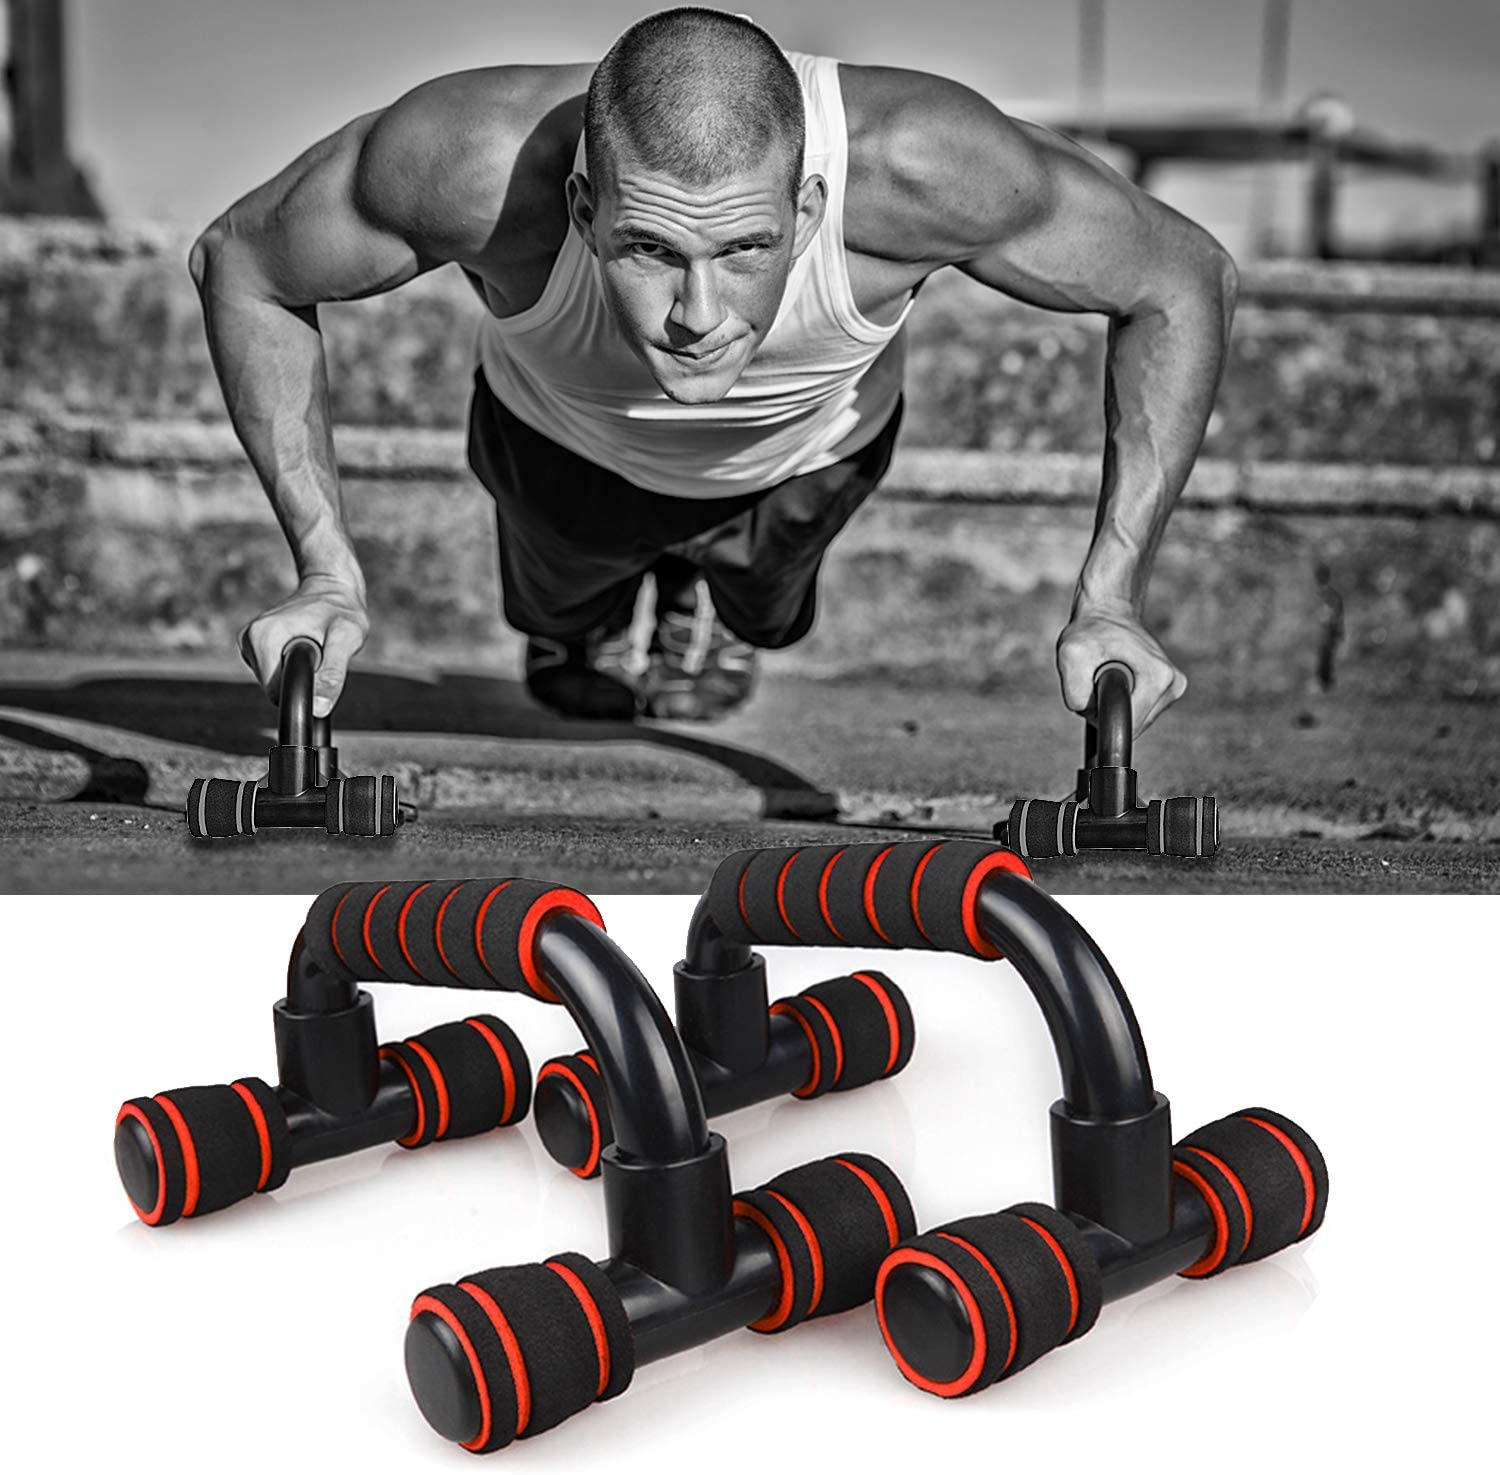 Zaleonline Pair of Push Up Bars Fitness Press Up Stands with Sponge Grip Handles for Gym Exercise Workout Training Trainer Sport Equipment for Men and Women